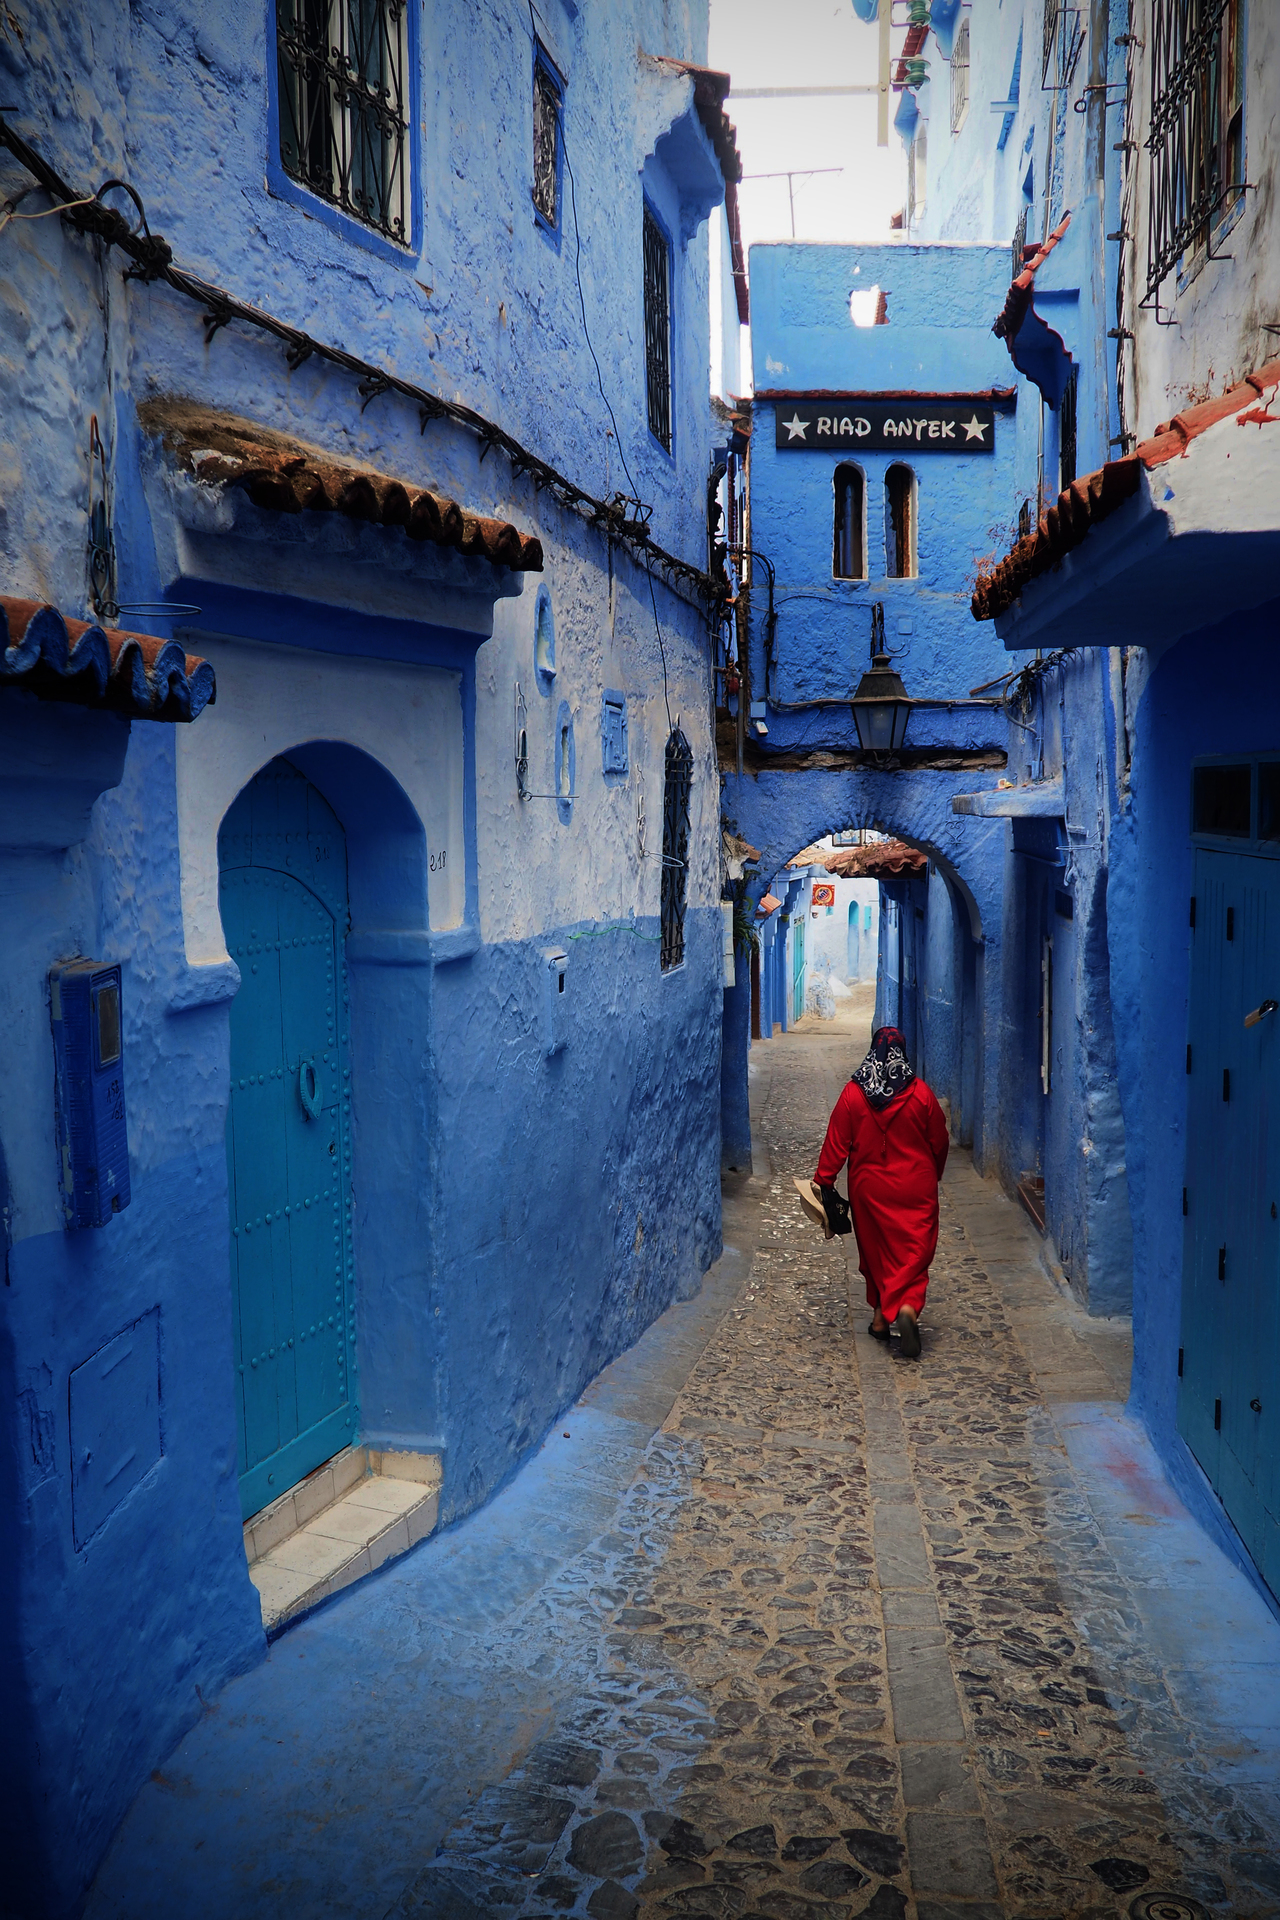 The blue pearl of Morocco